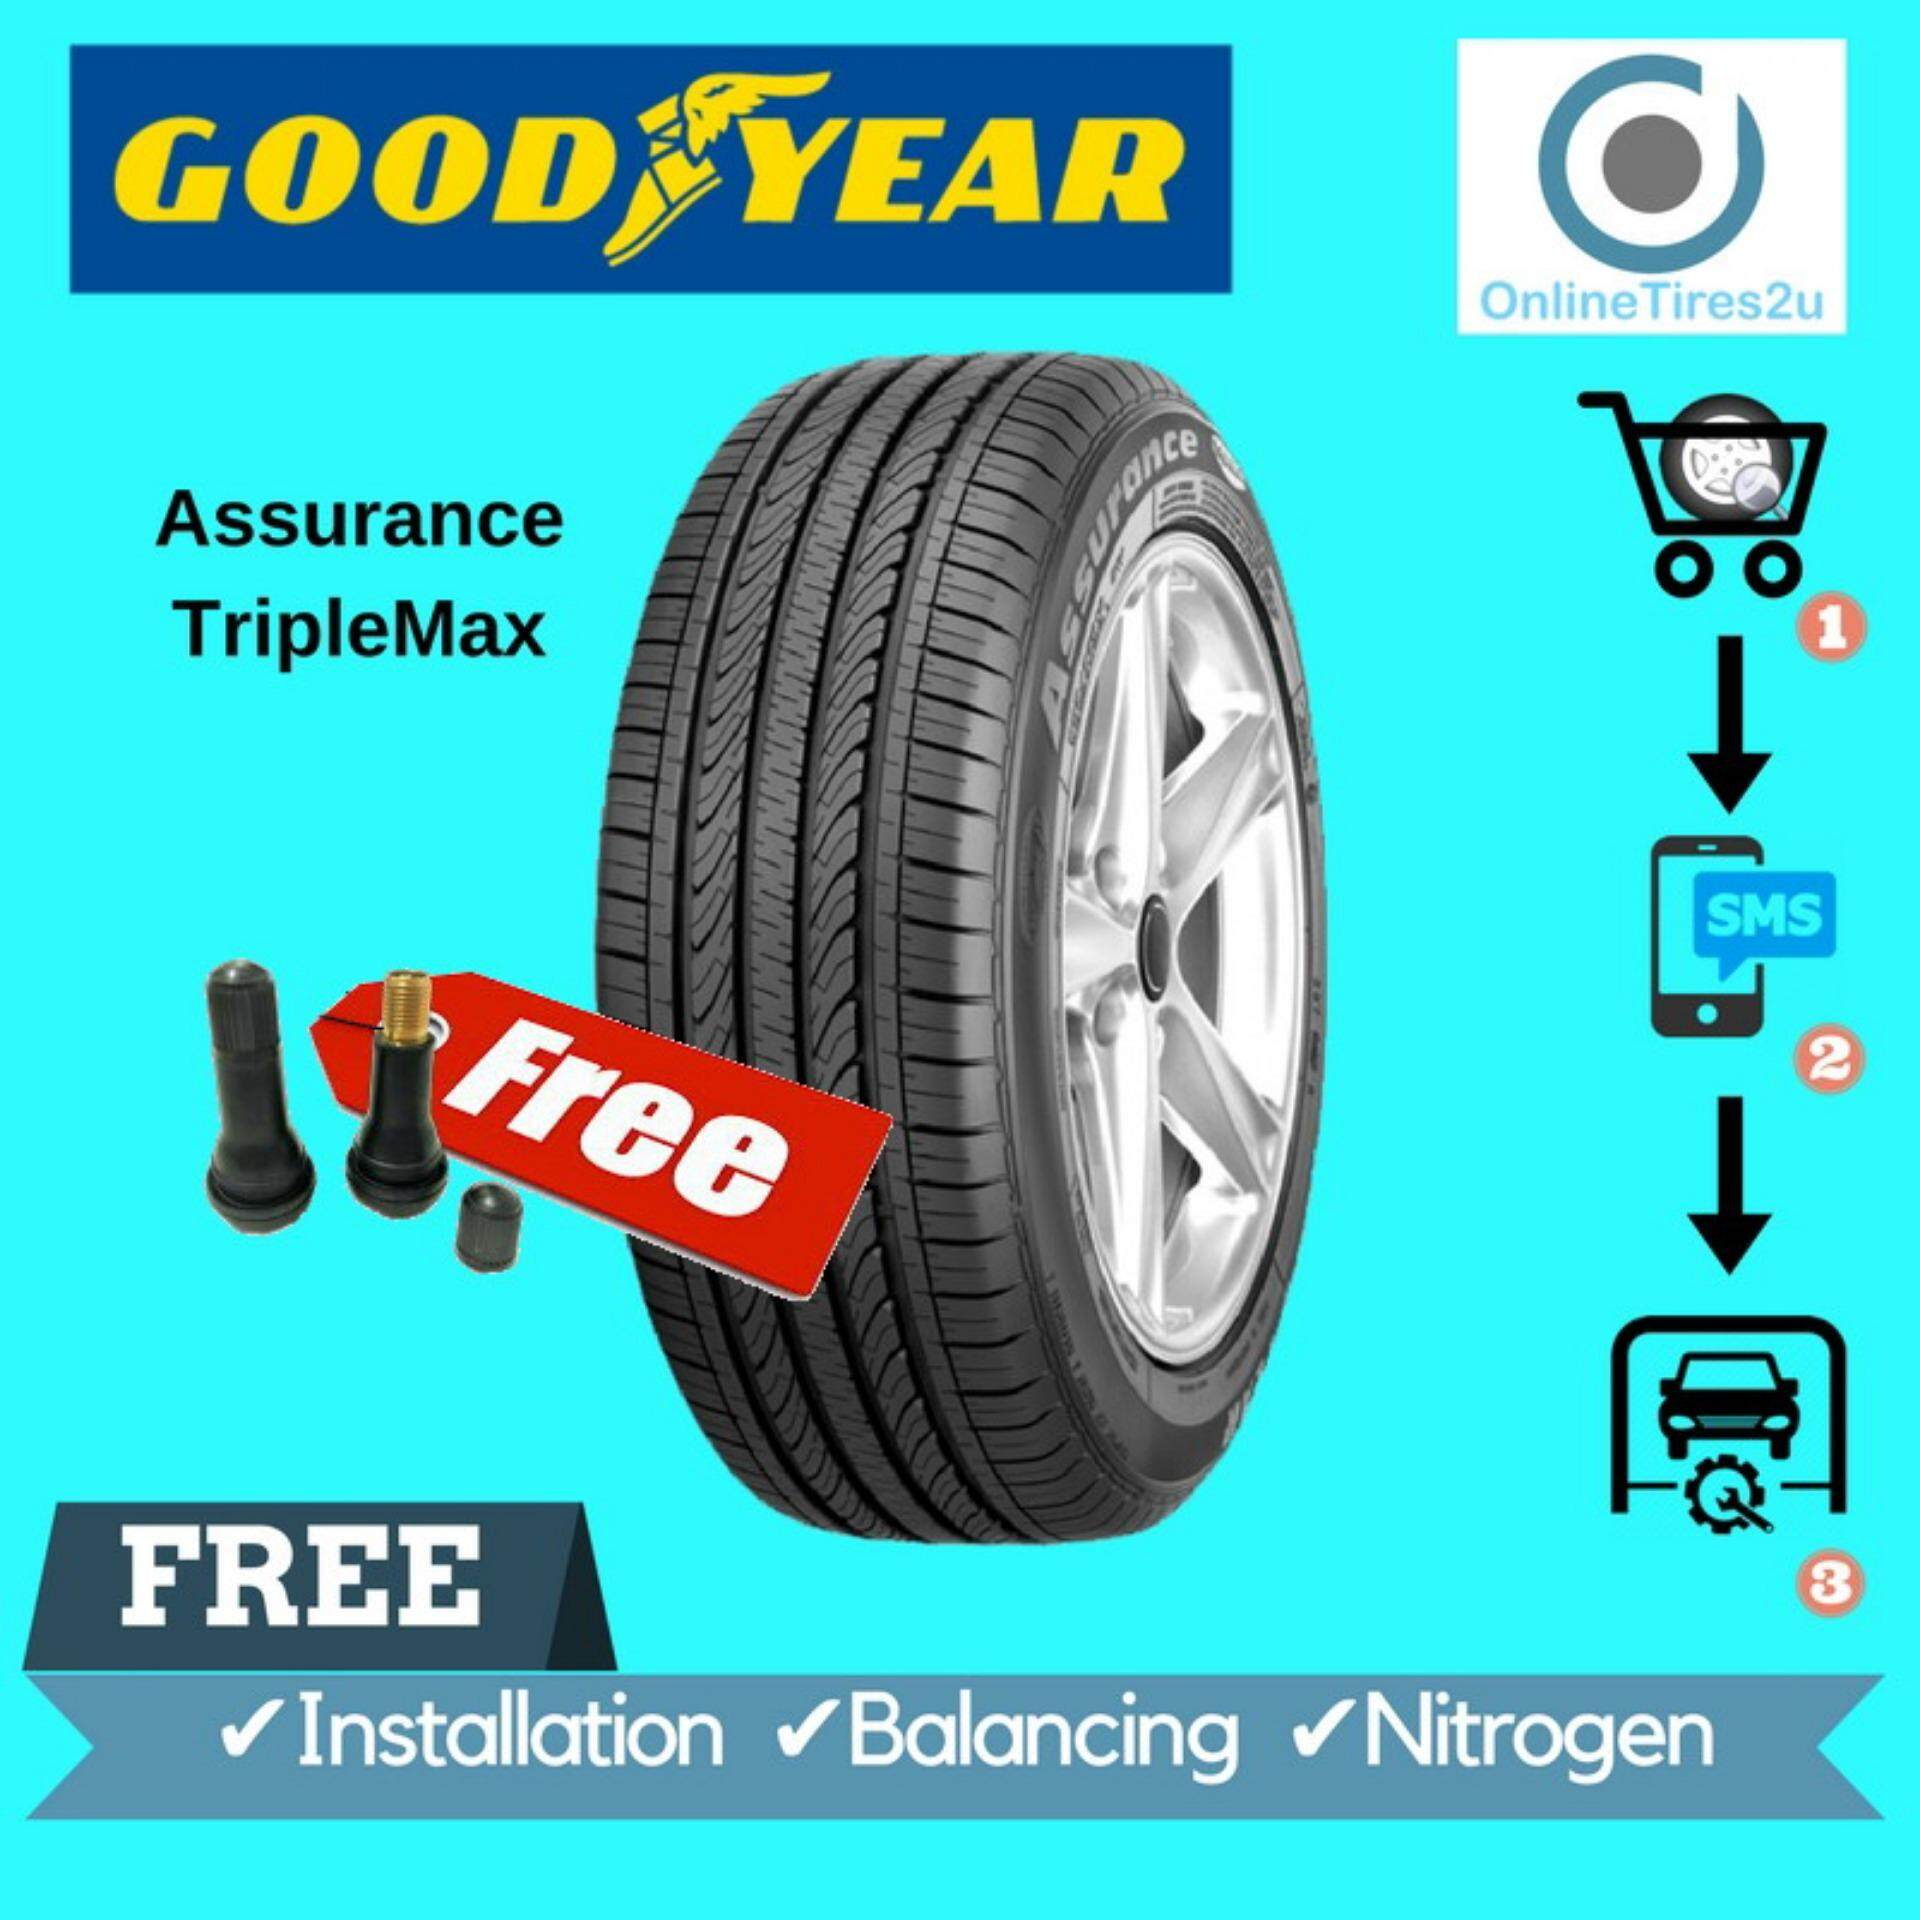 Goodyear Assurance Triplemax - 185/55r15 (with Installation) By Onlinetires2u.